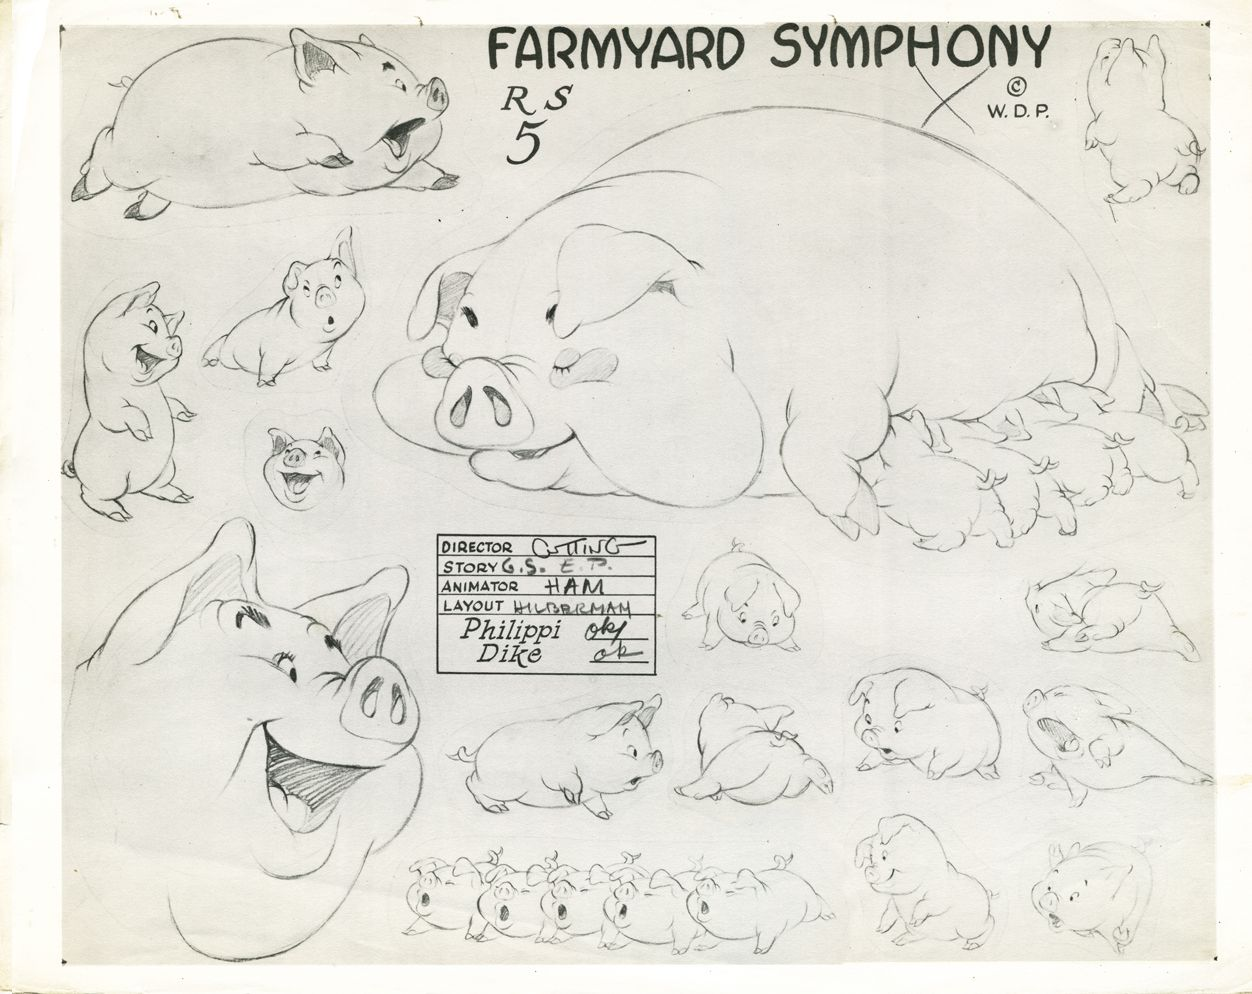 model sheet for pig and piglets featured in the silly symphony